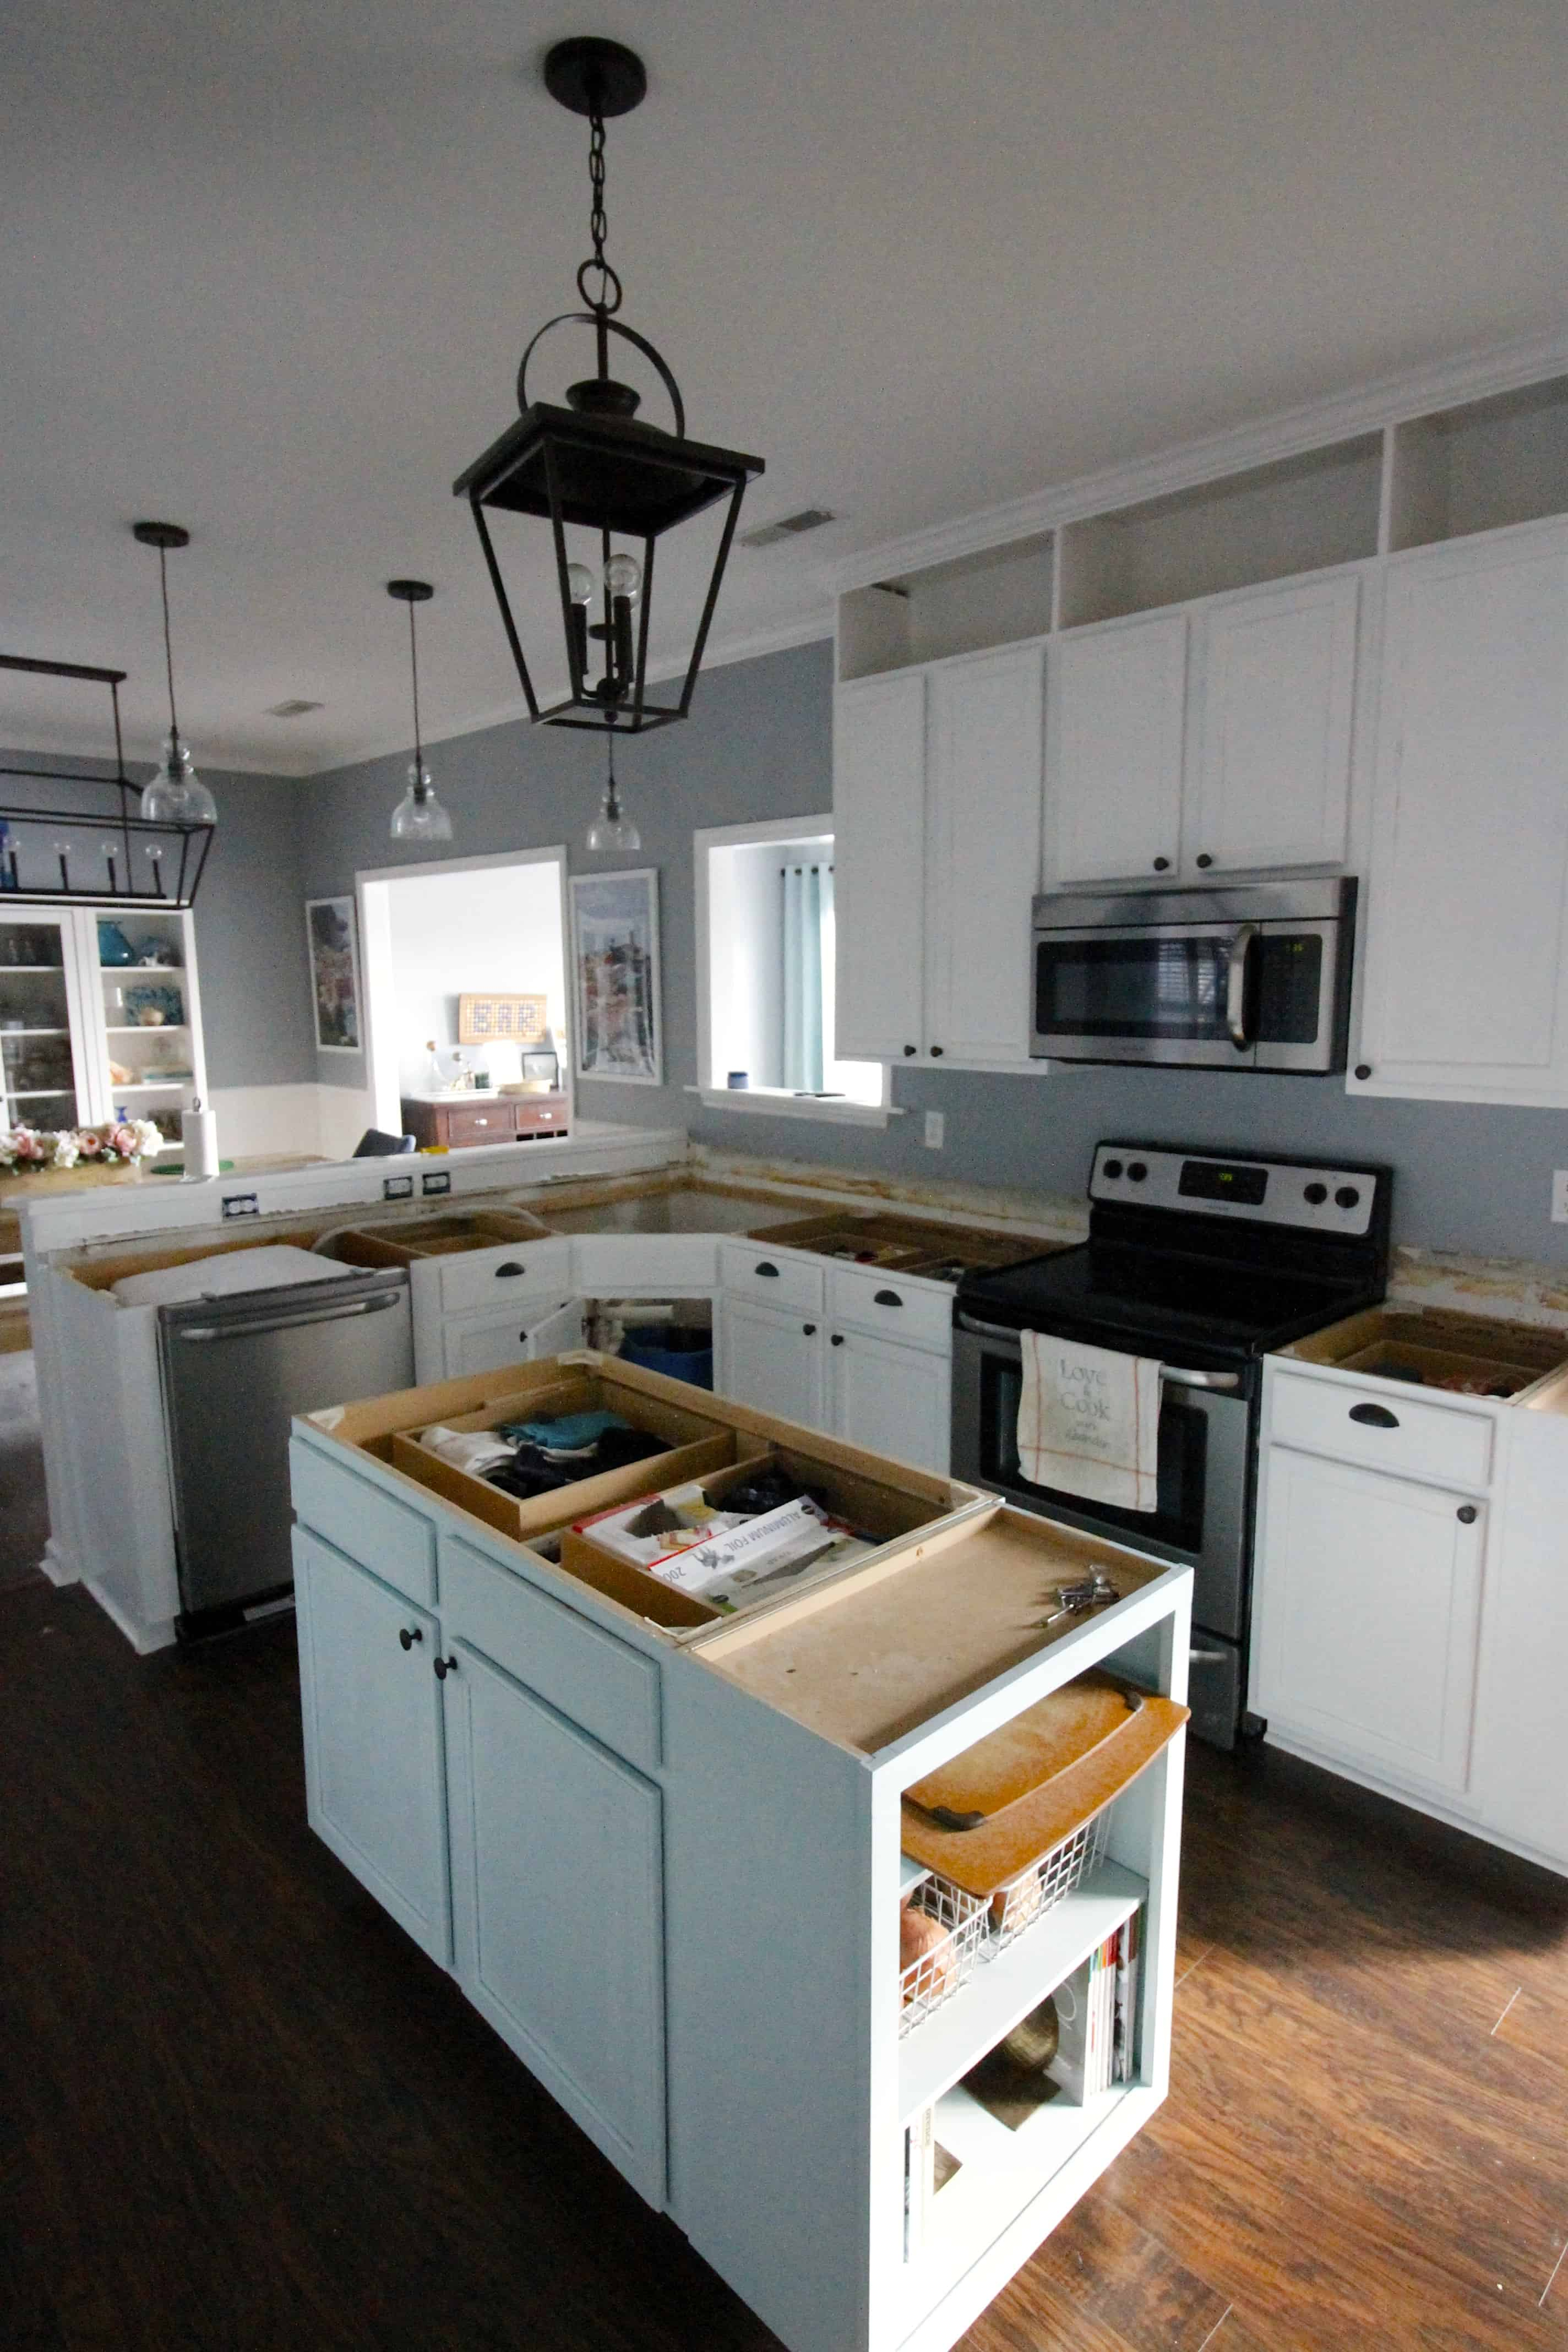 How to remove kitchen cabinets and countertops - Removing The Laminate Counters